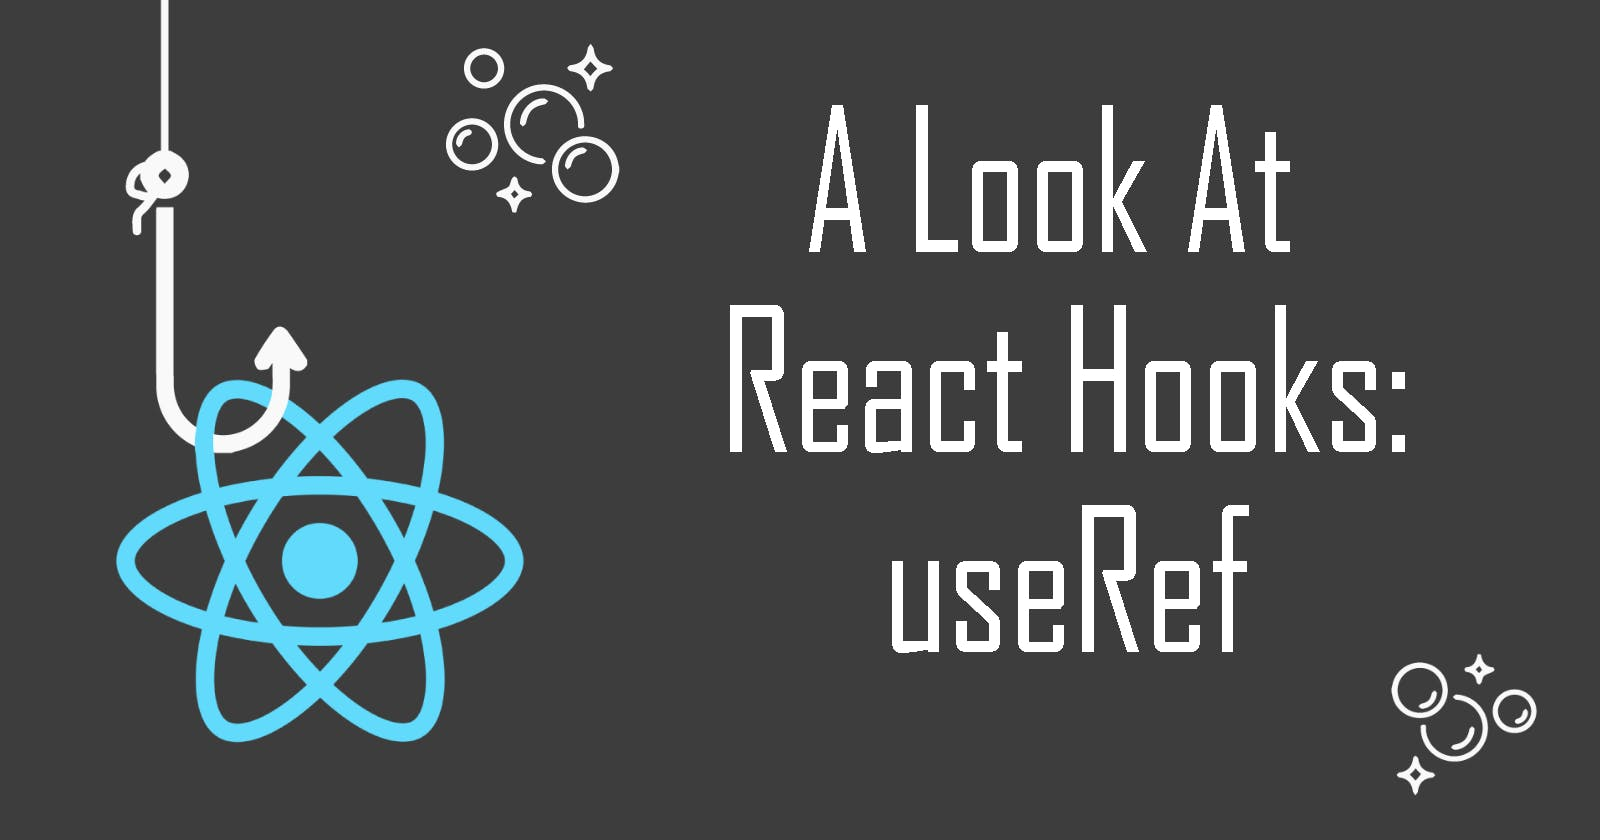 A Look At React Hooks: useRef